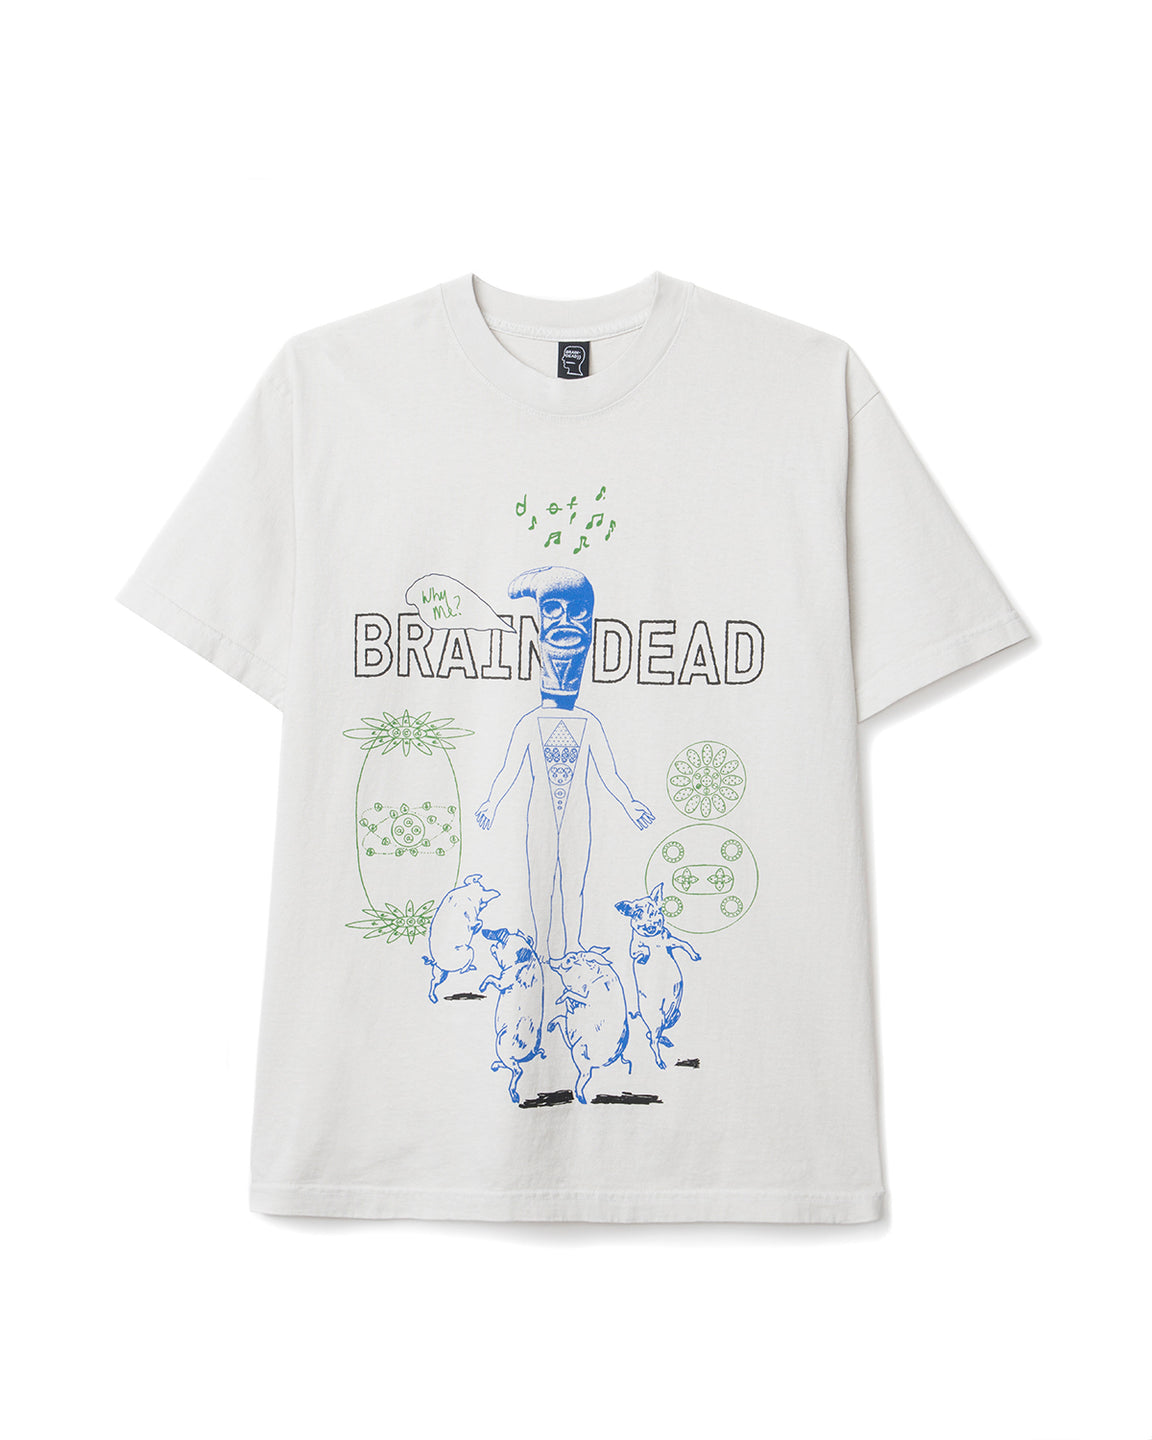 On Hot Tiles Braindead T-shirt - Natural - Brain Dead